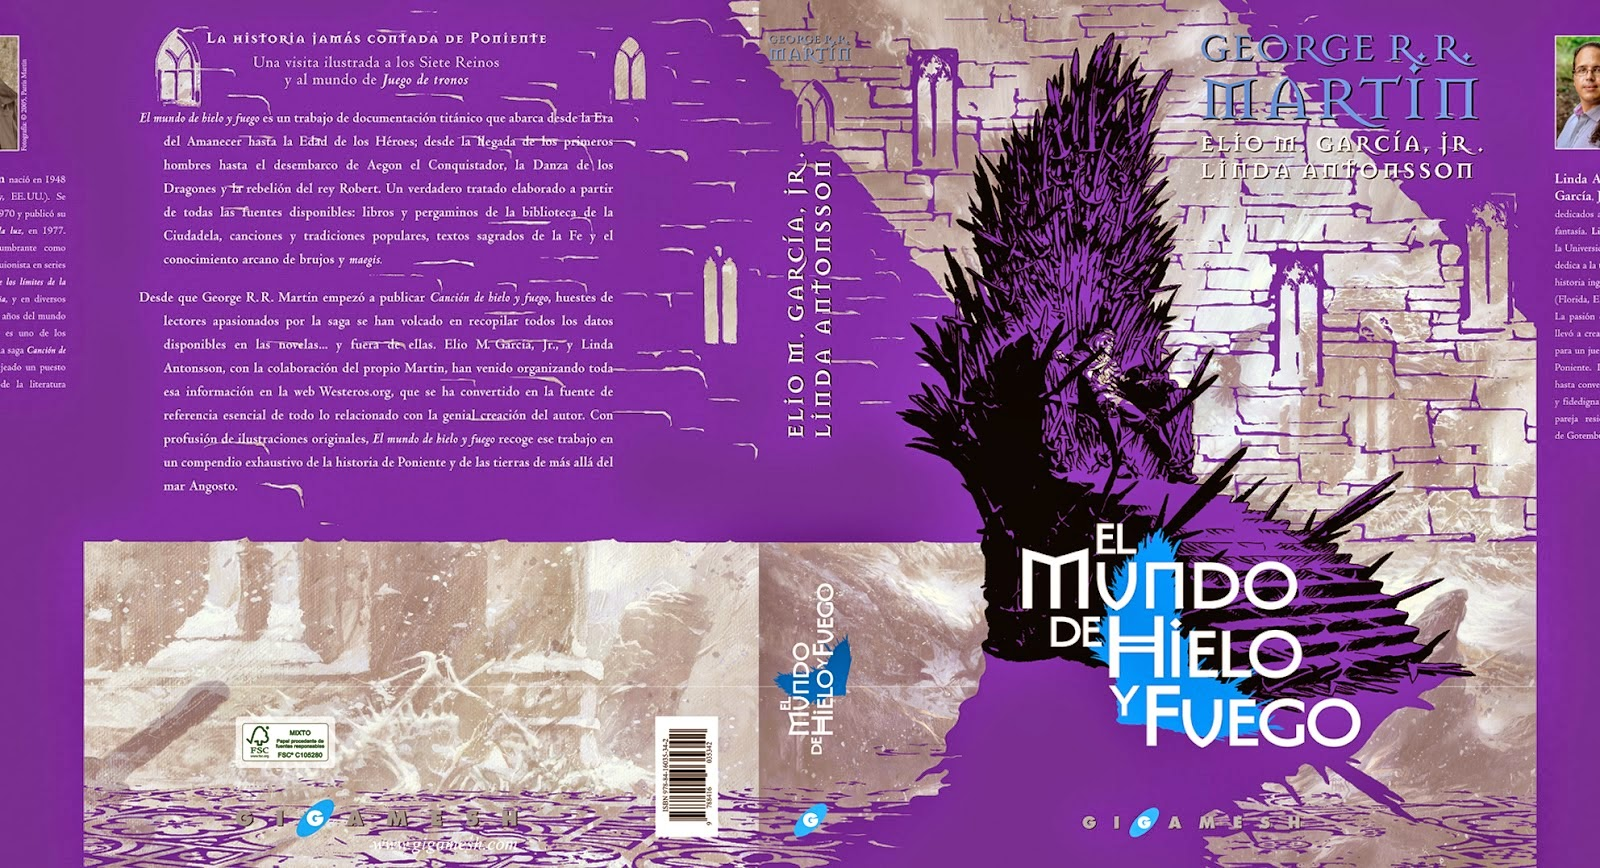 And the book jacket